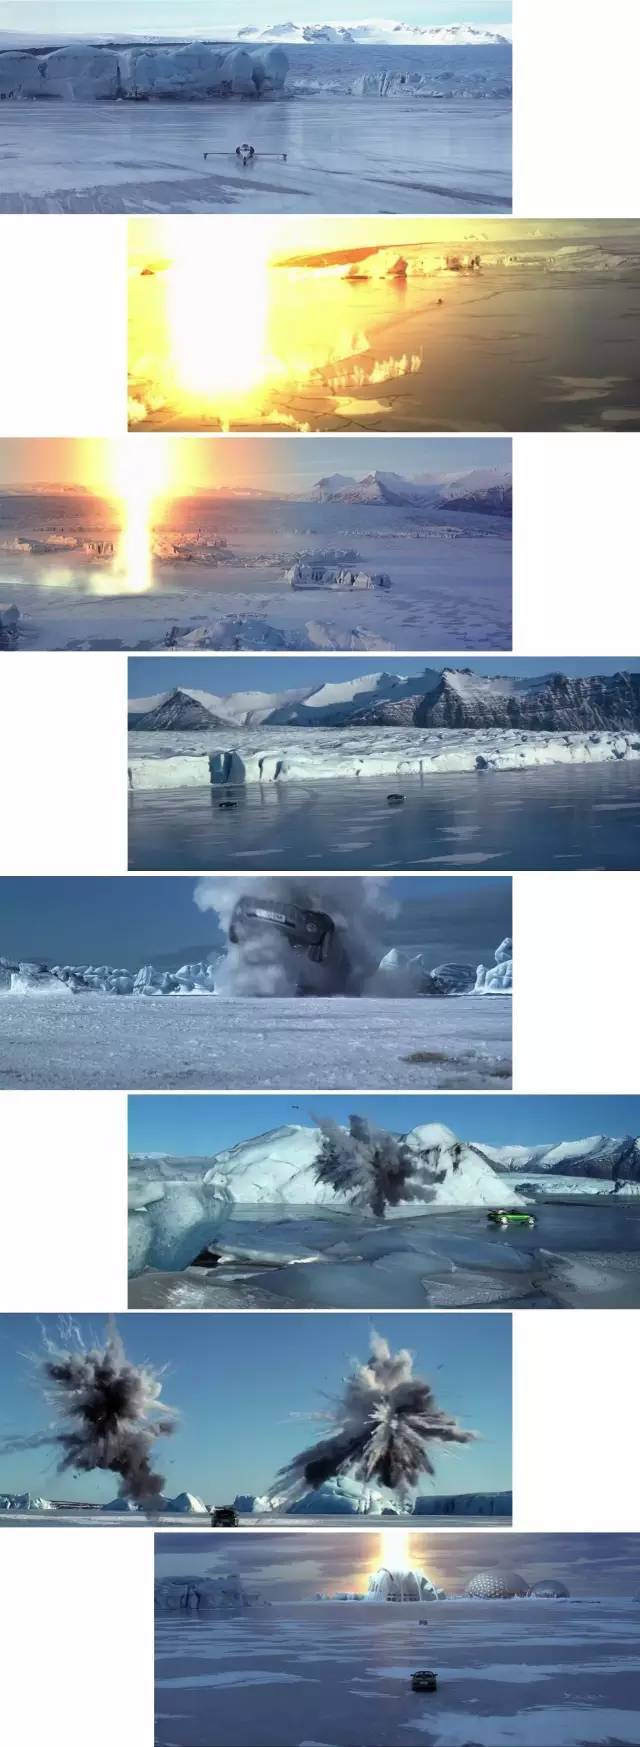 Earth at the End of the World, Prehistoric, Doomsday, Outer Space, and Unusual World in the Movie